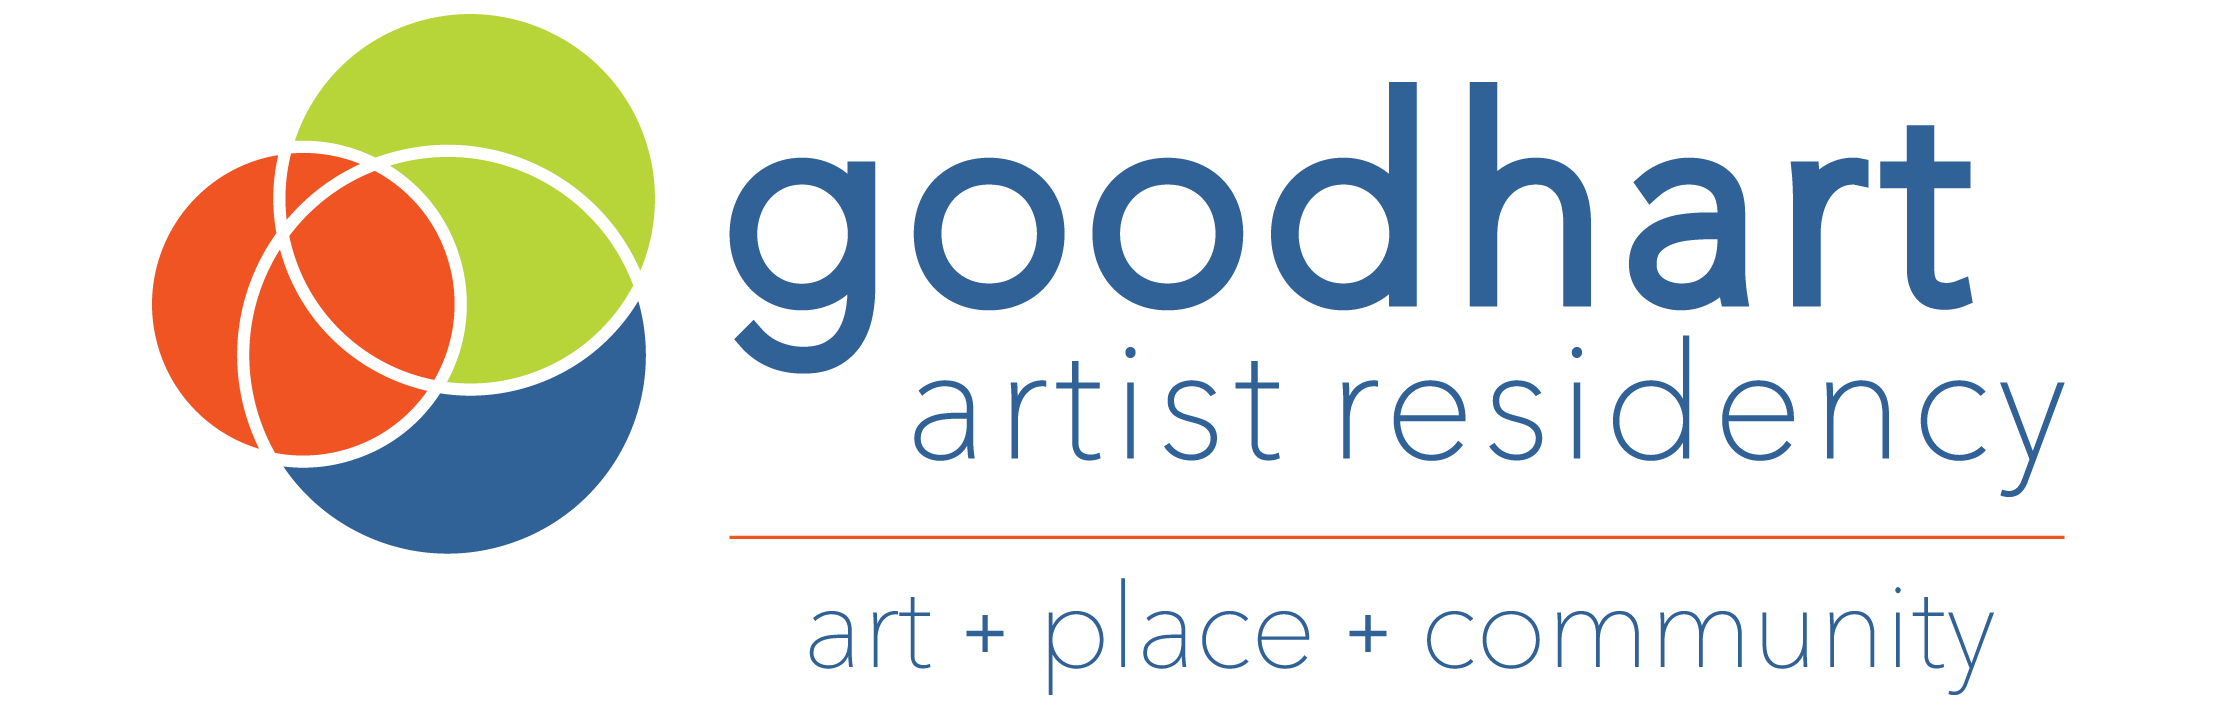 Good Hart Artist Residency